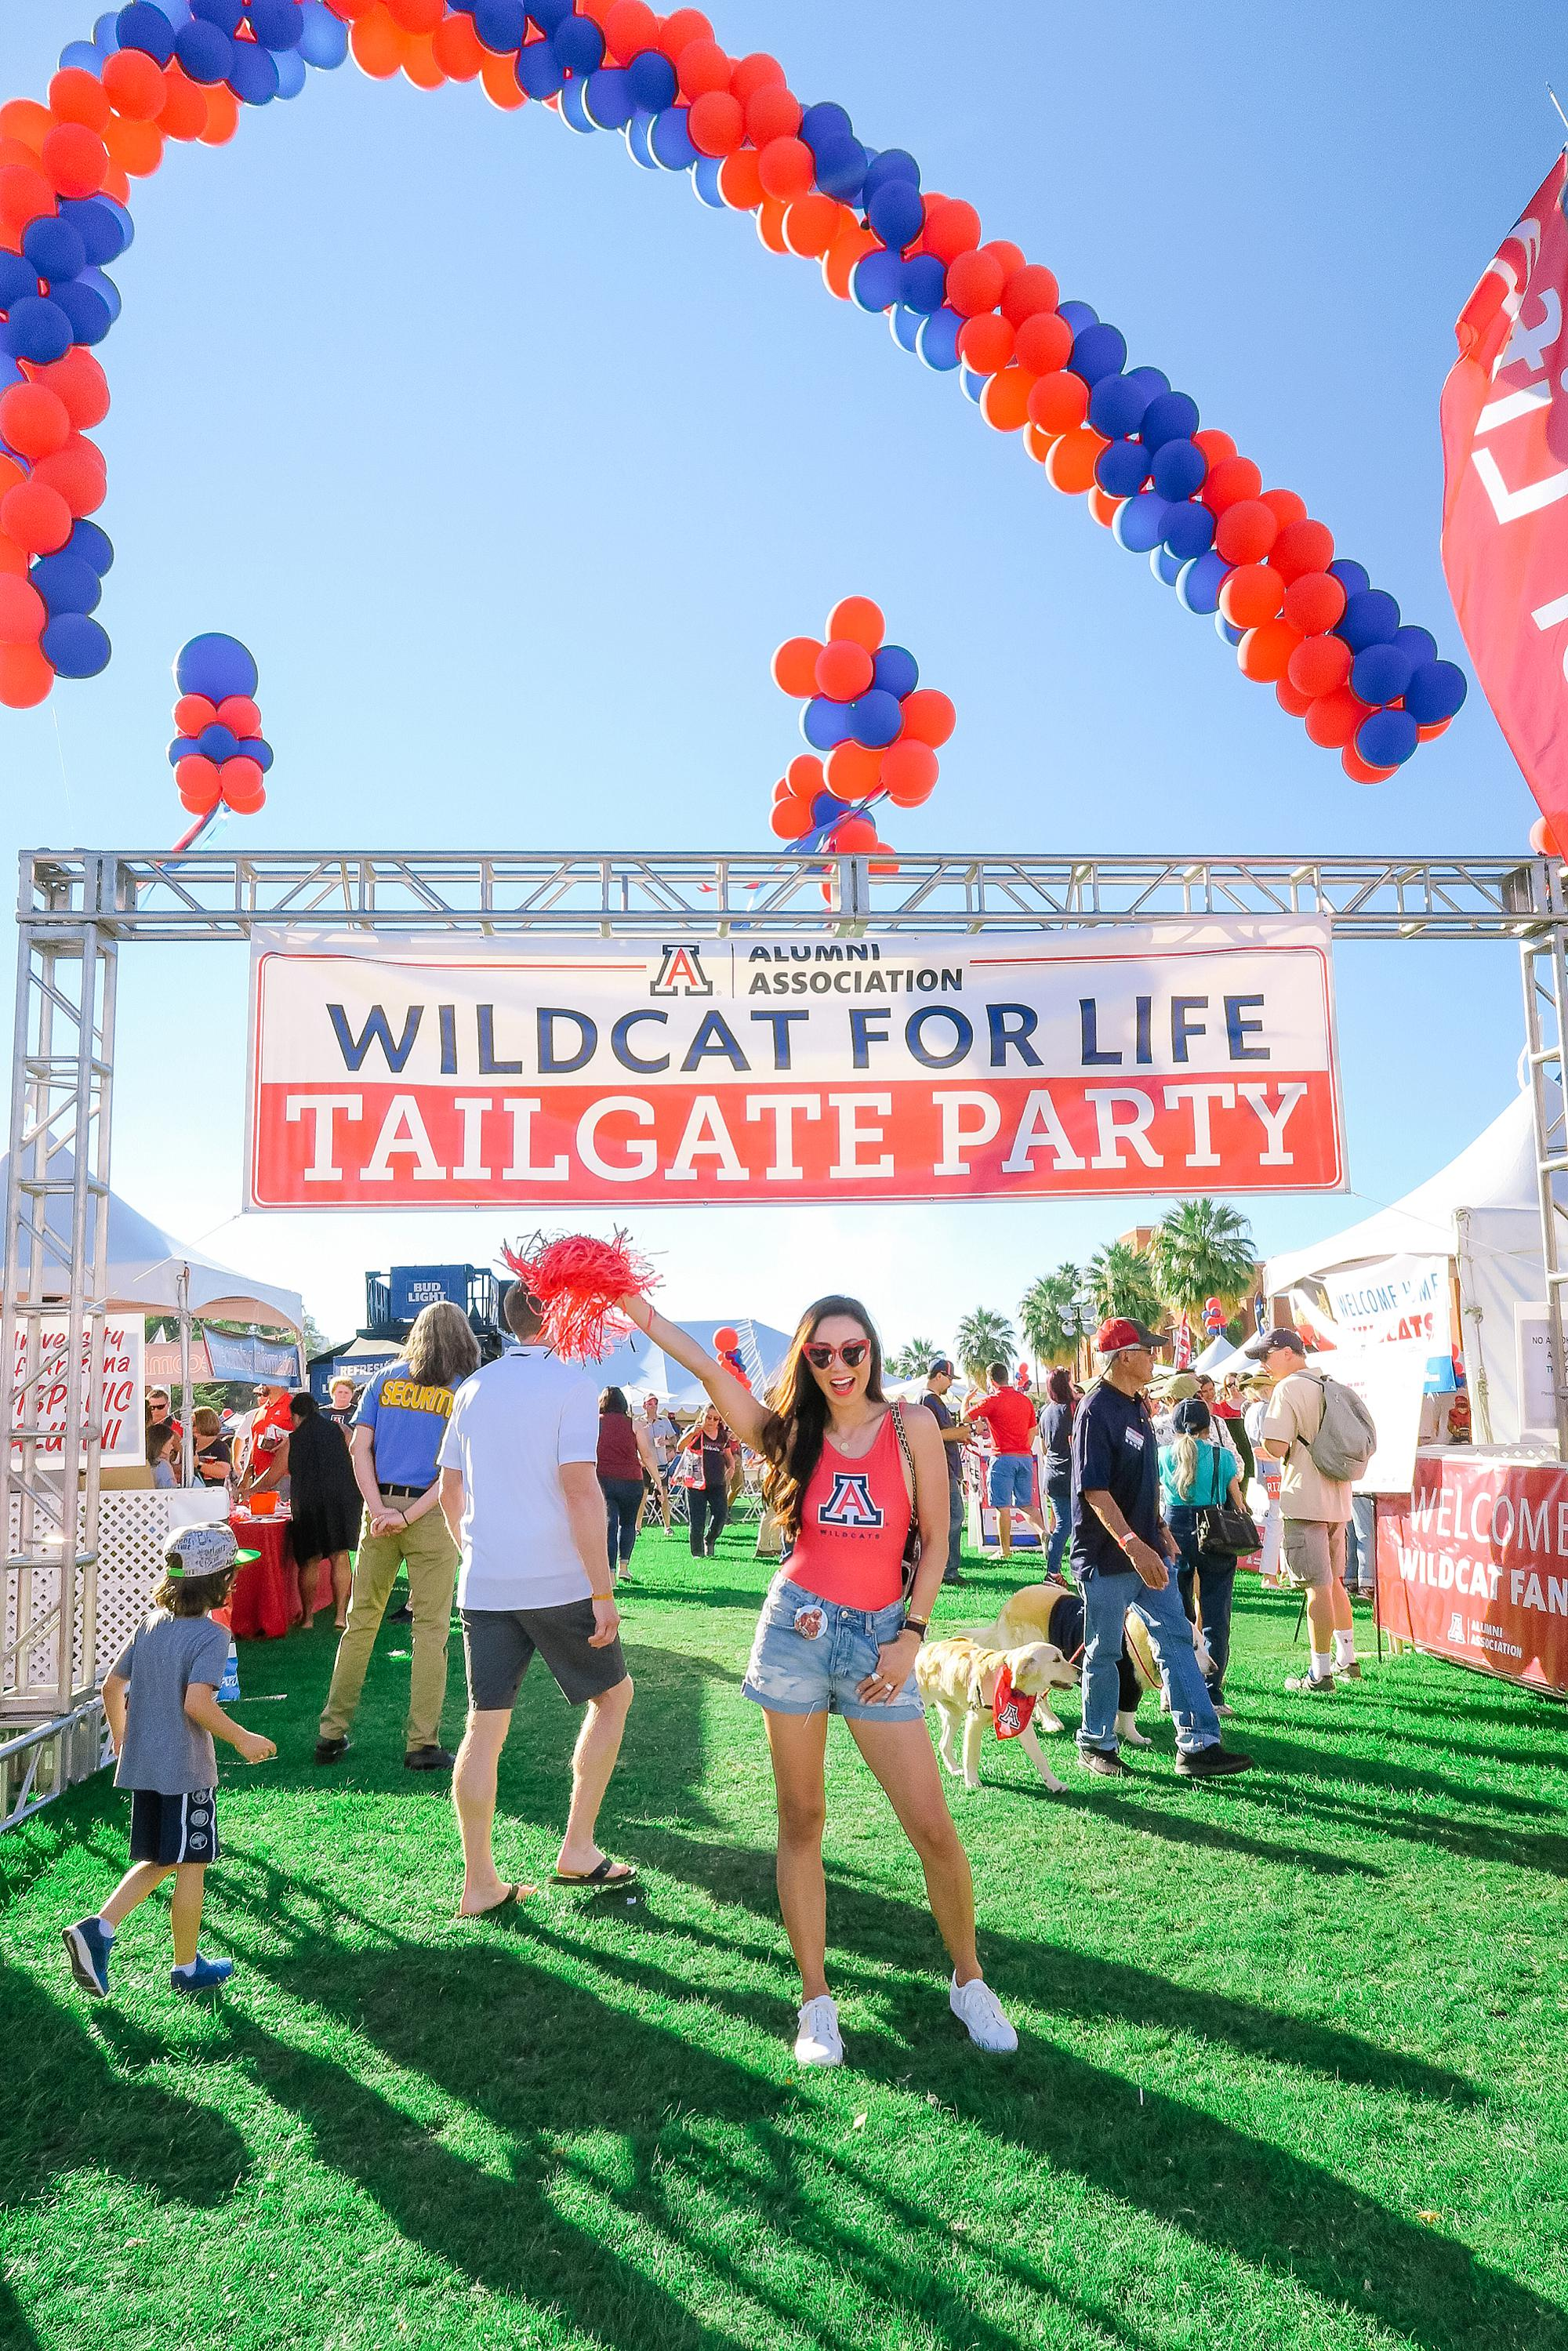 wildcat for life alumni tailgate party tent at University of Arizona homecoming 2018